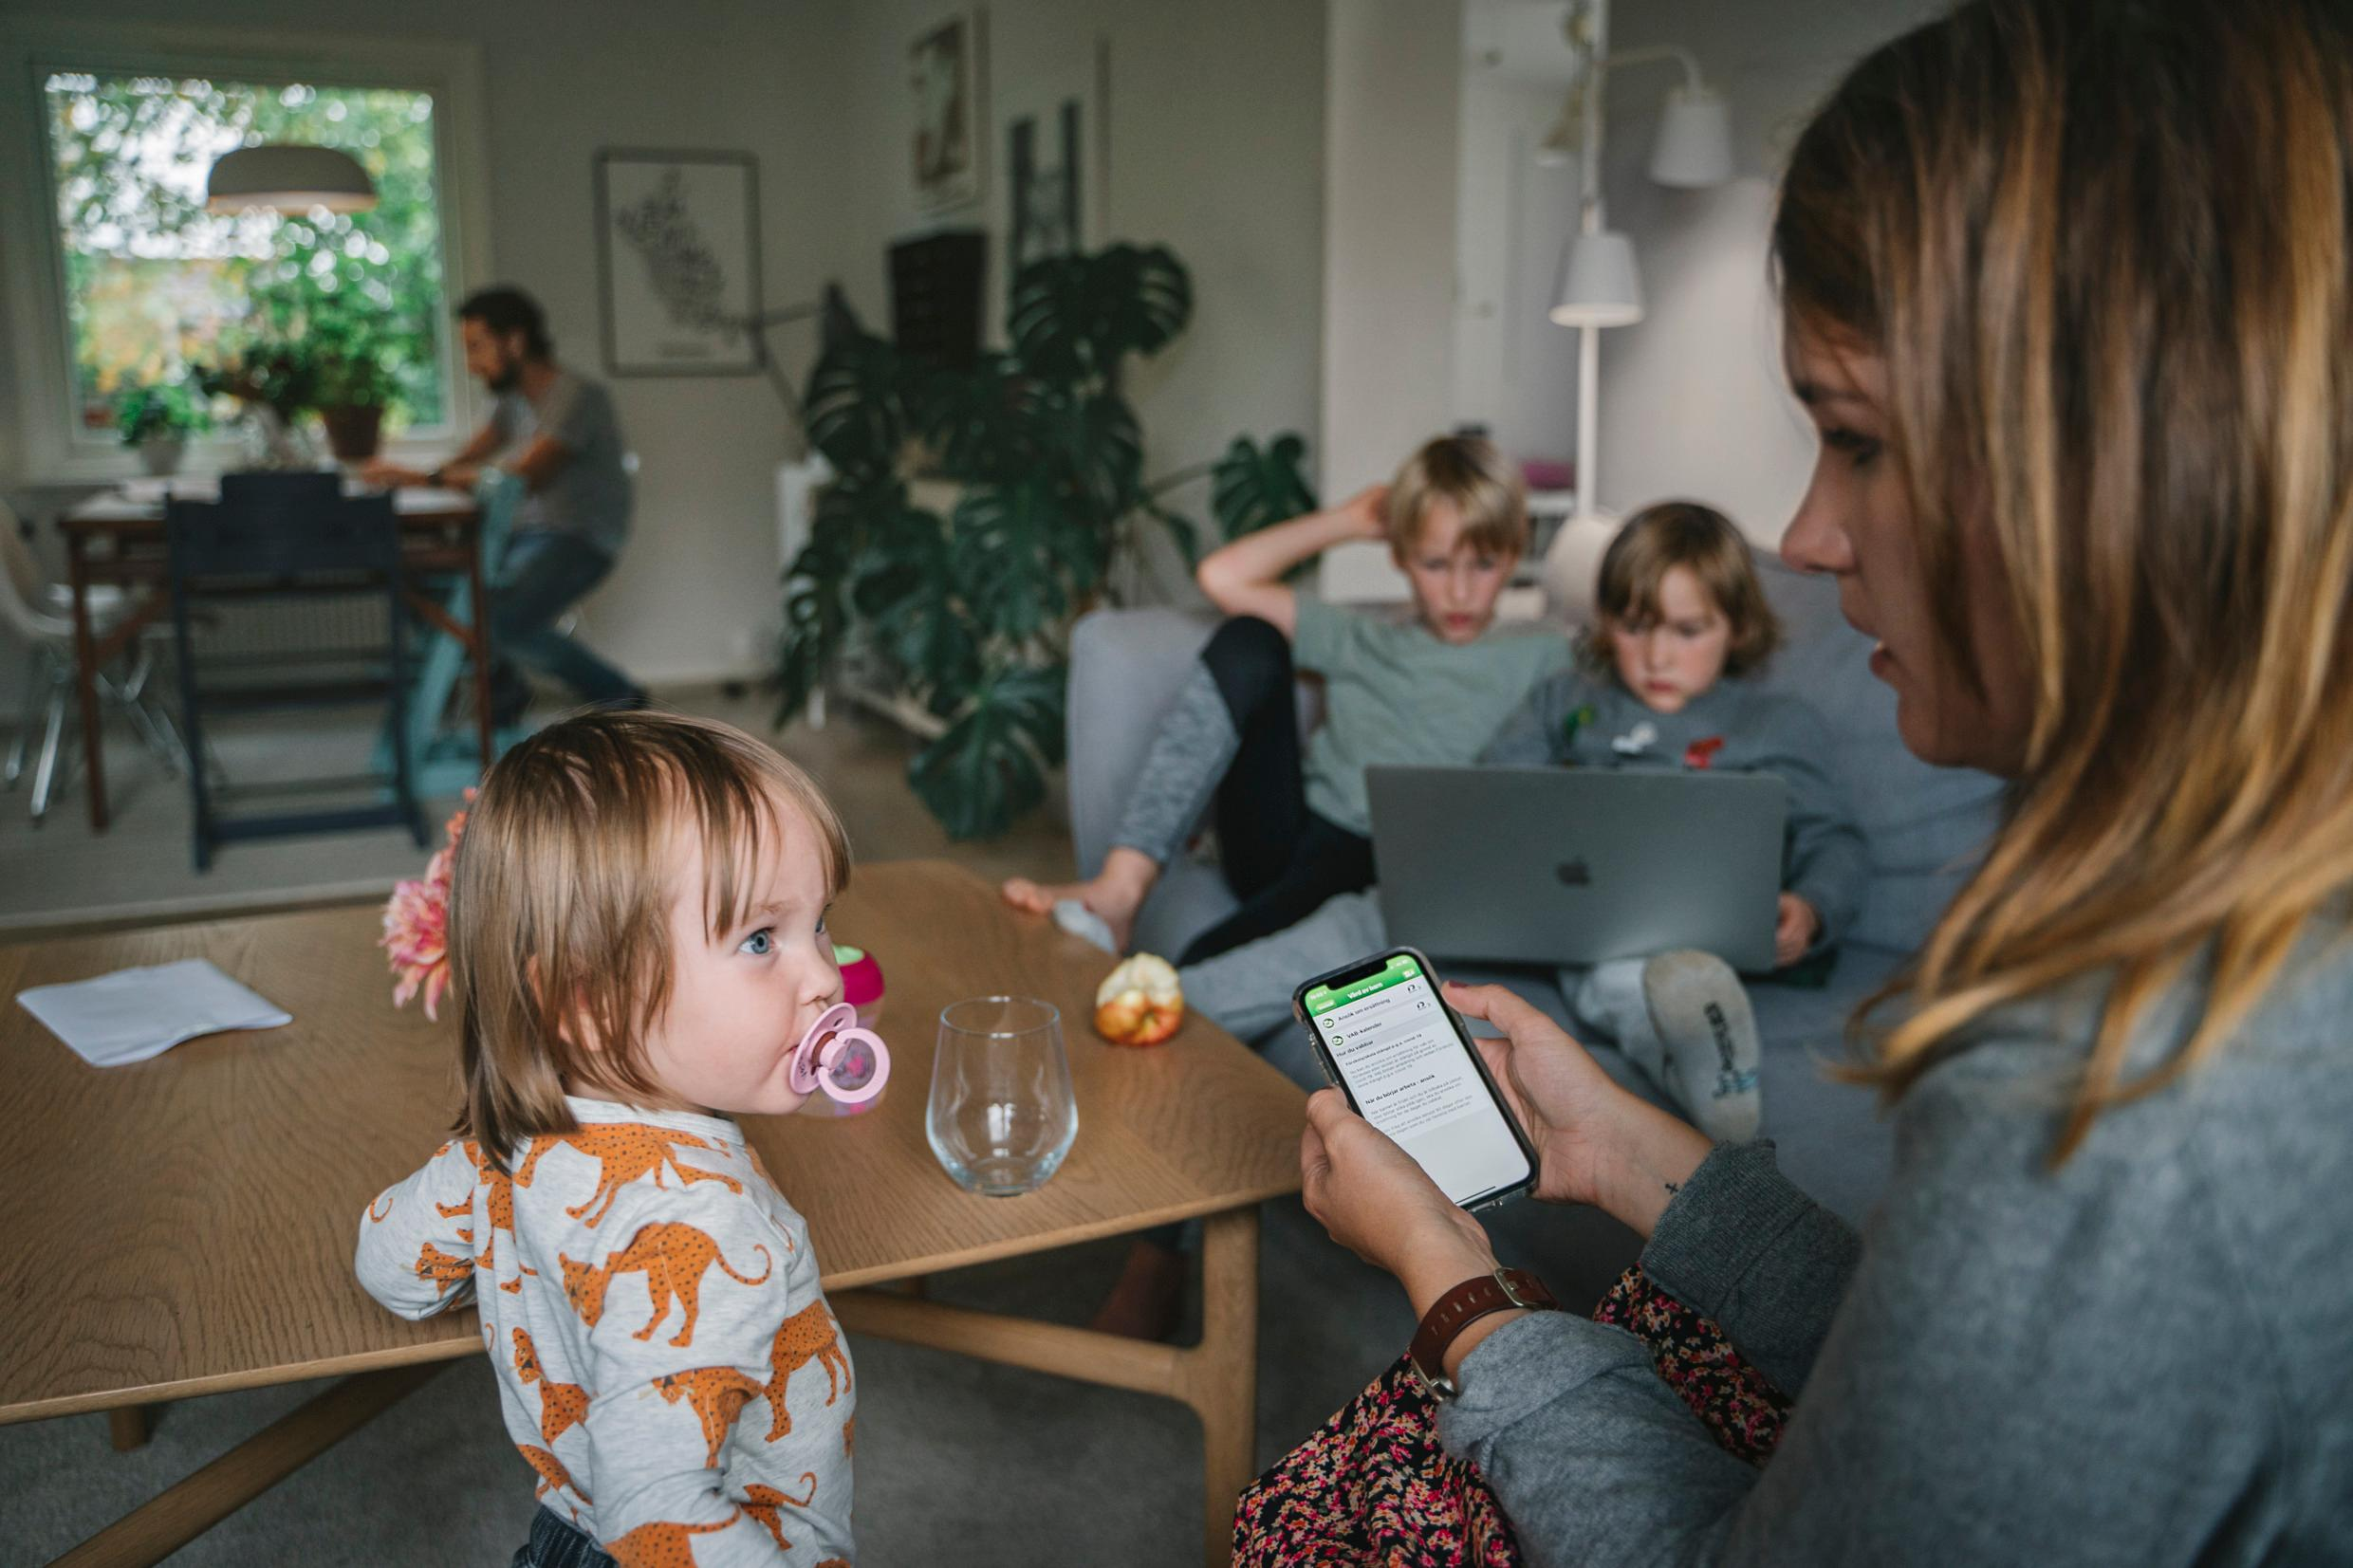 A family setting in a living room, with three children, a mother and a father. Two kids watch something on a laptop. The mother is using her phone.